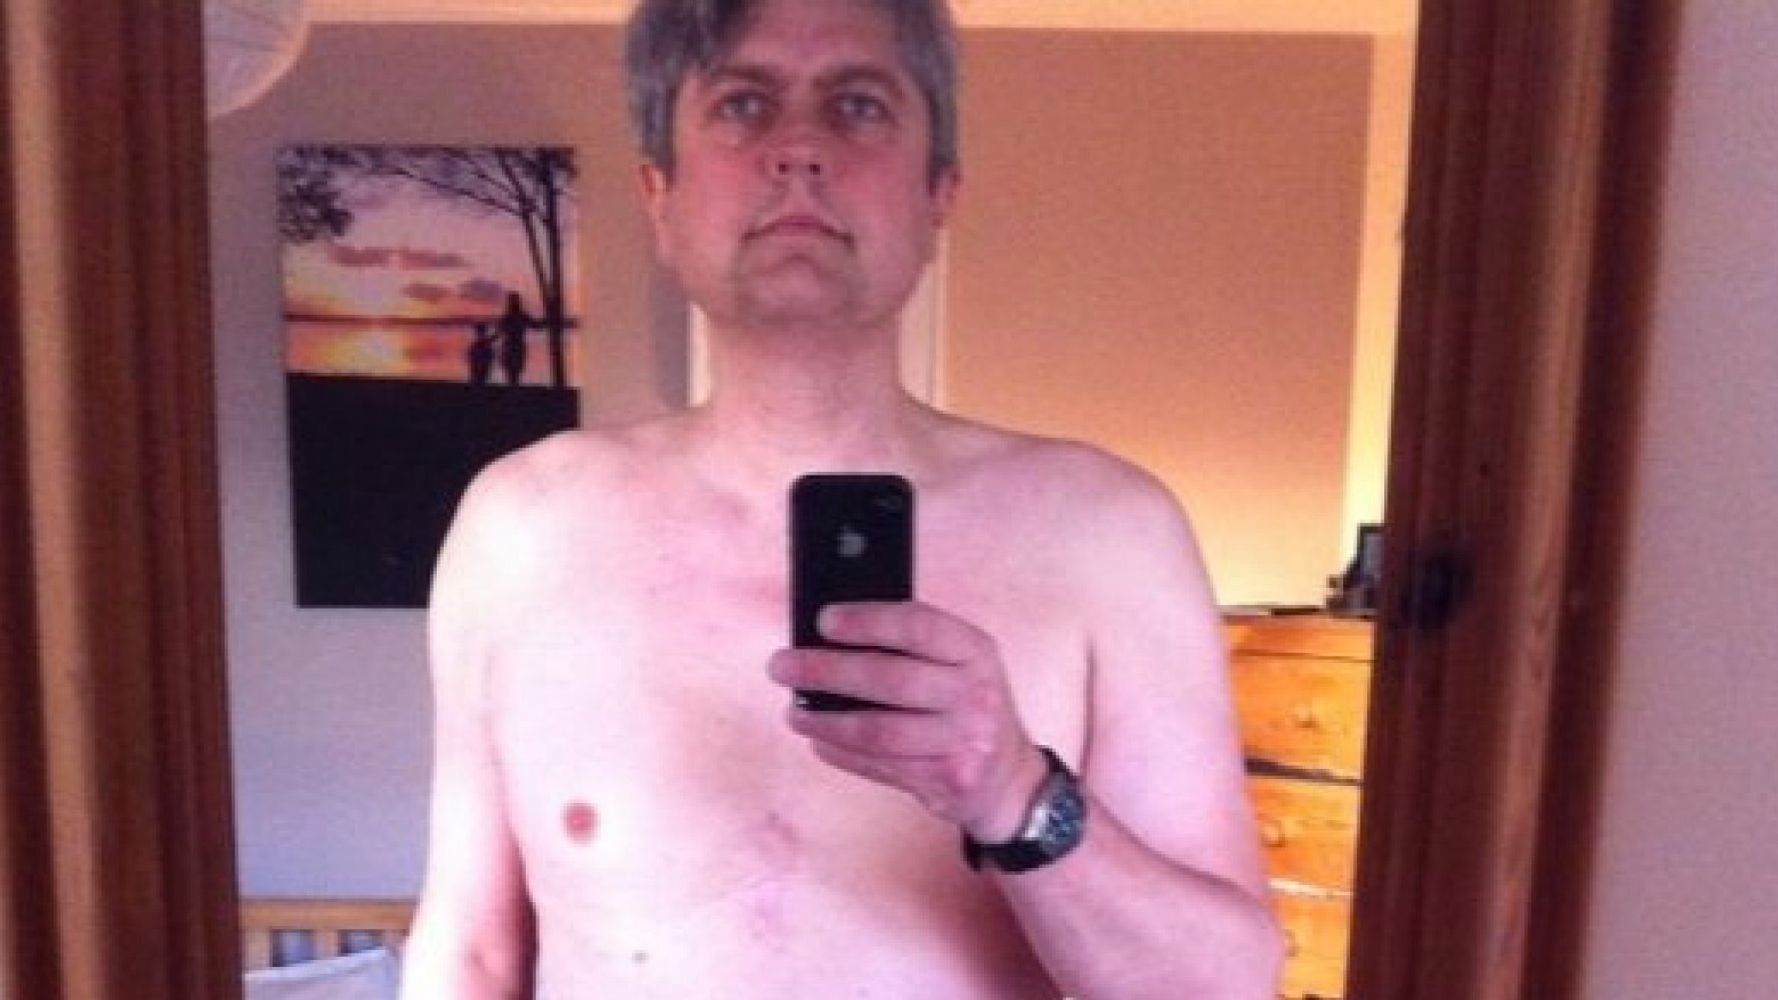 Prostate Cancer Patient With Colostomy Bag Shares Underwear Selfie